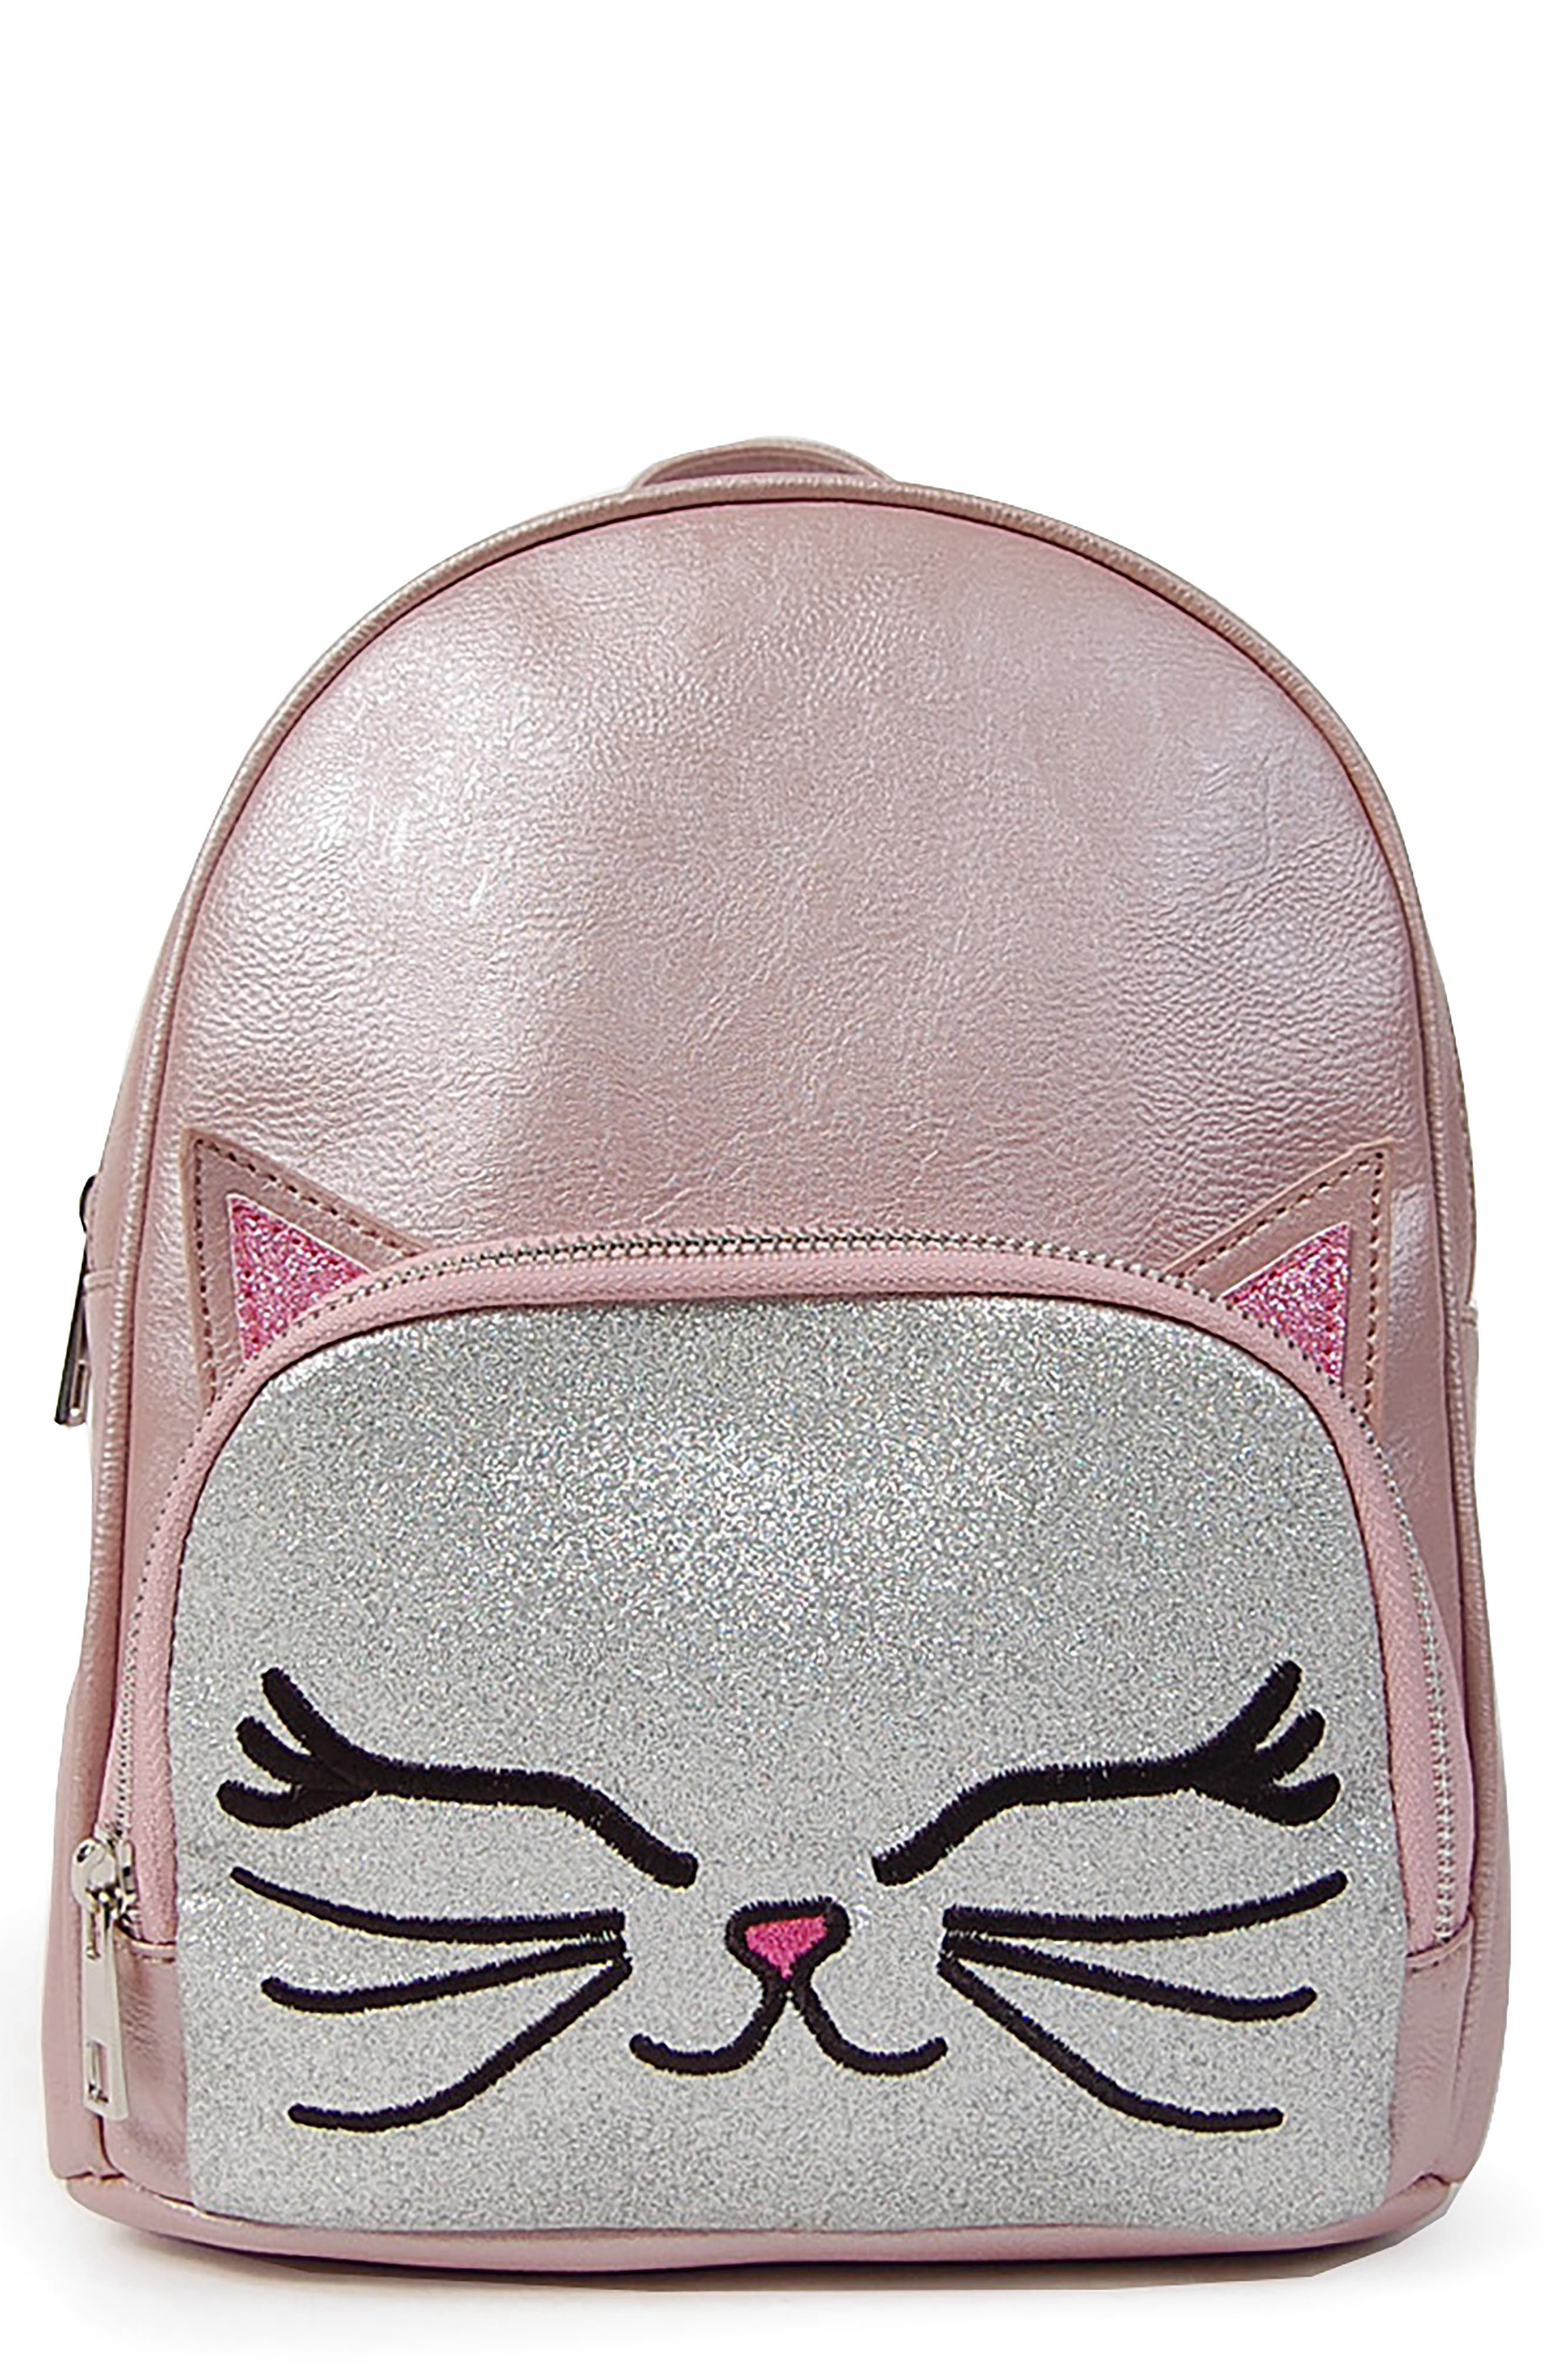 Pearlized Kitty Critter Mini Backpack,                             Main thumbnail 1, color,                             PINK